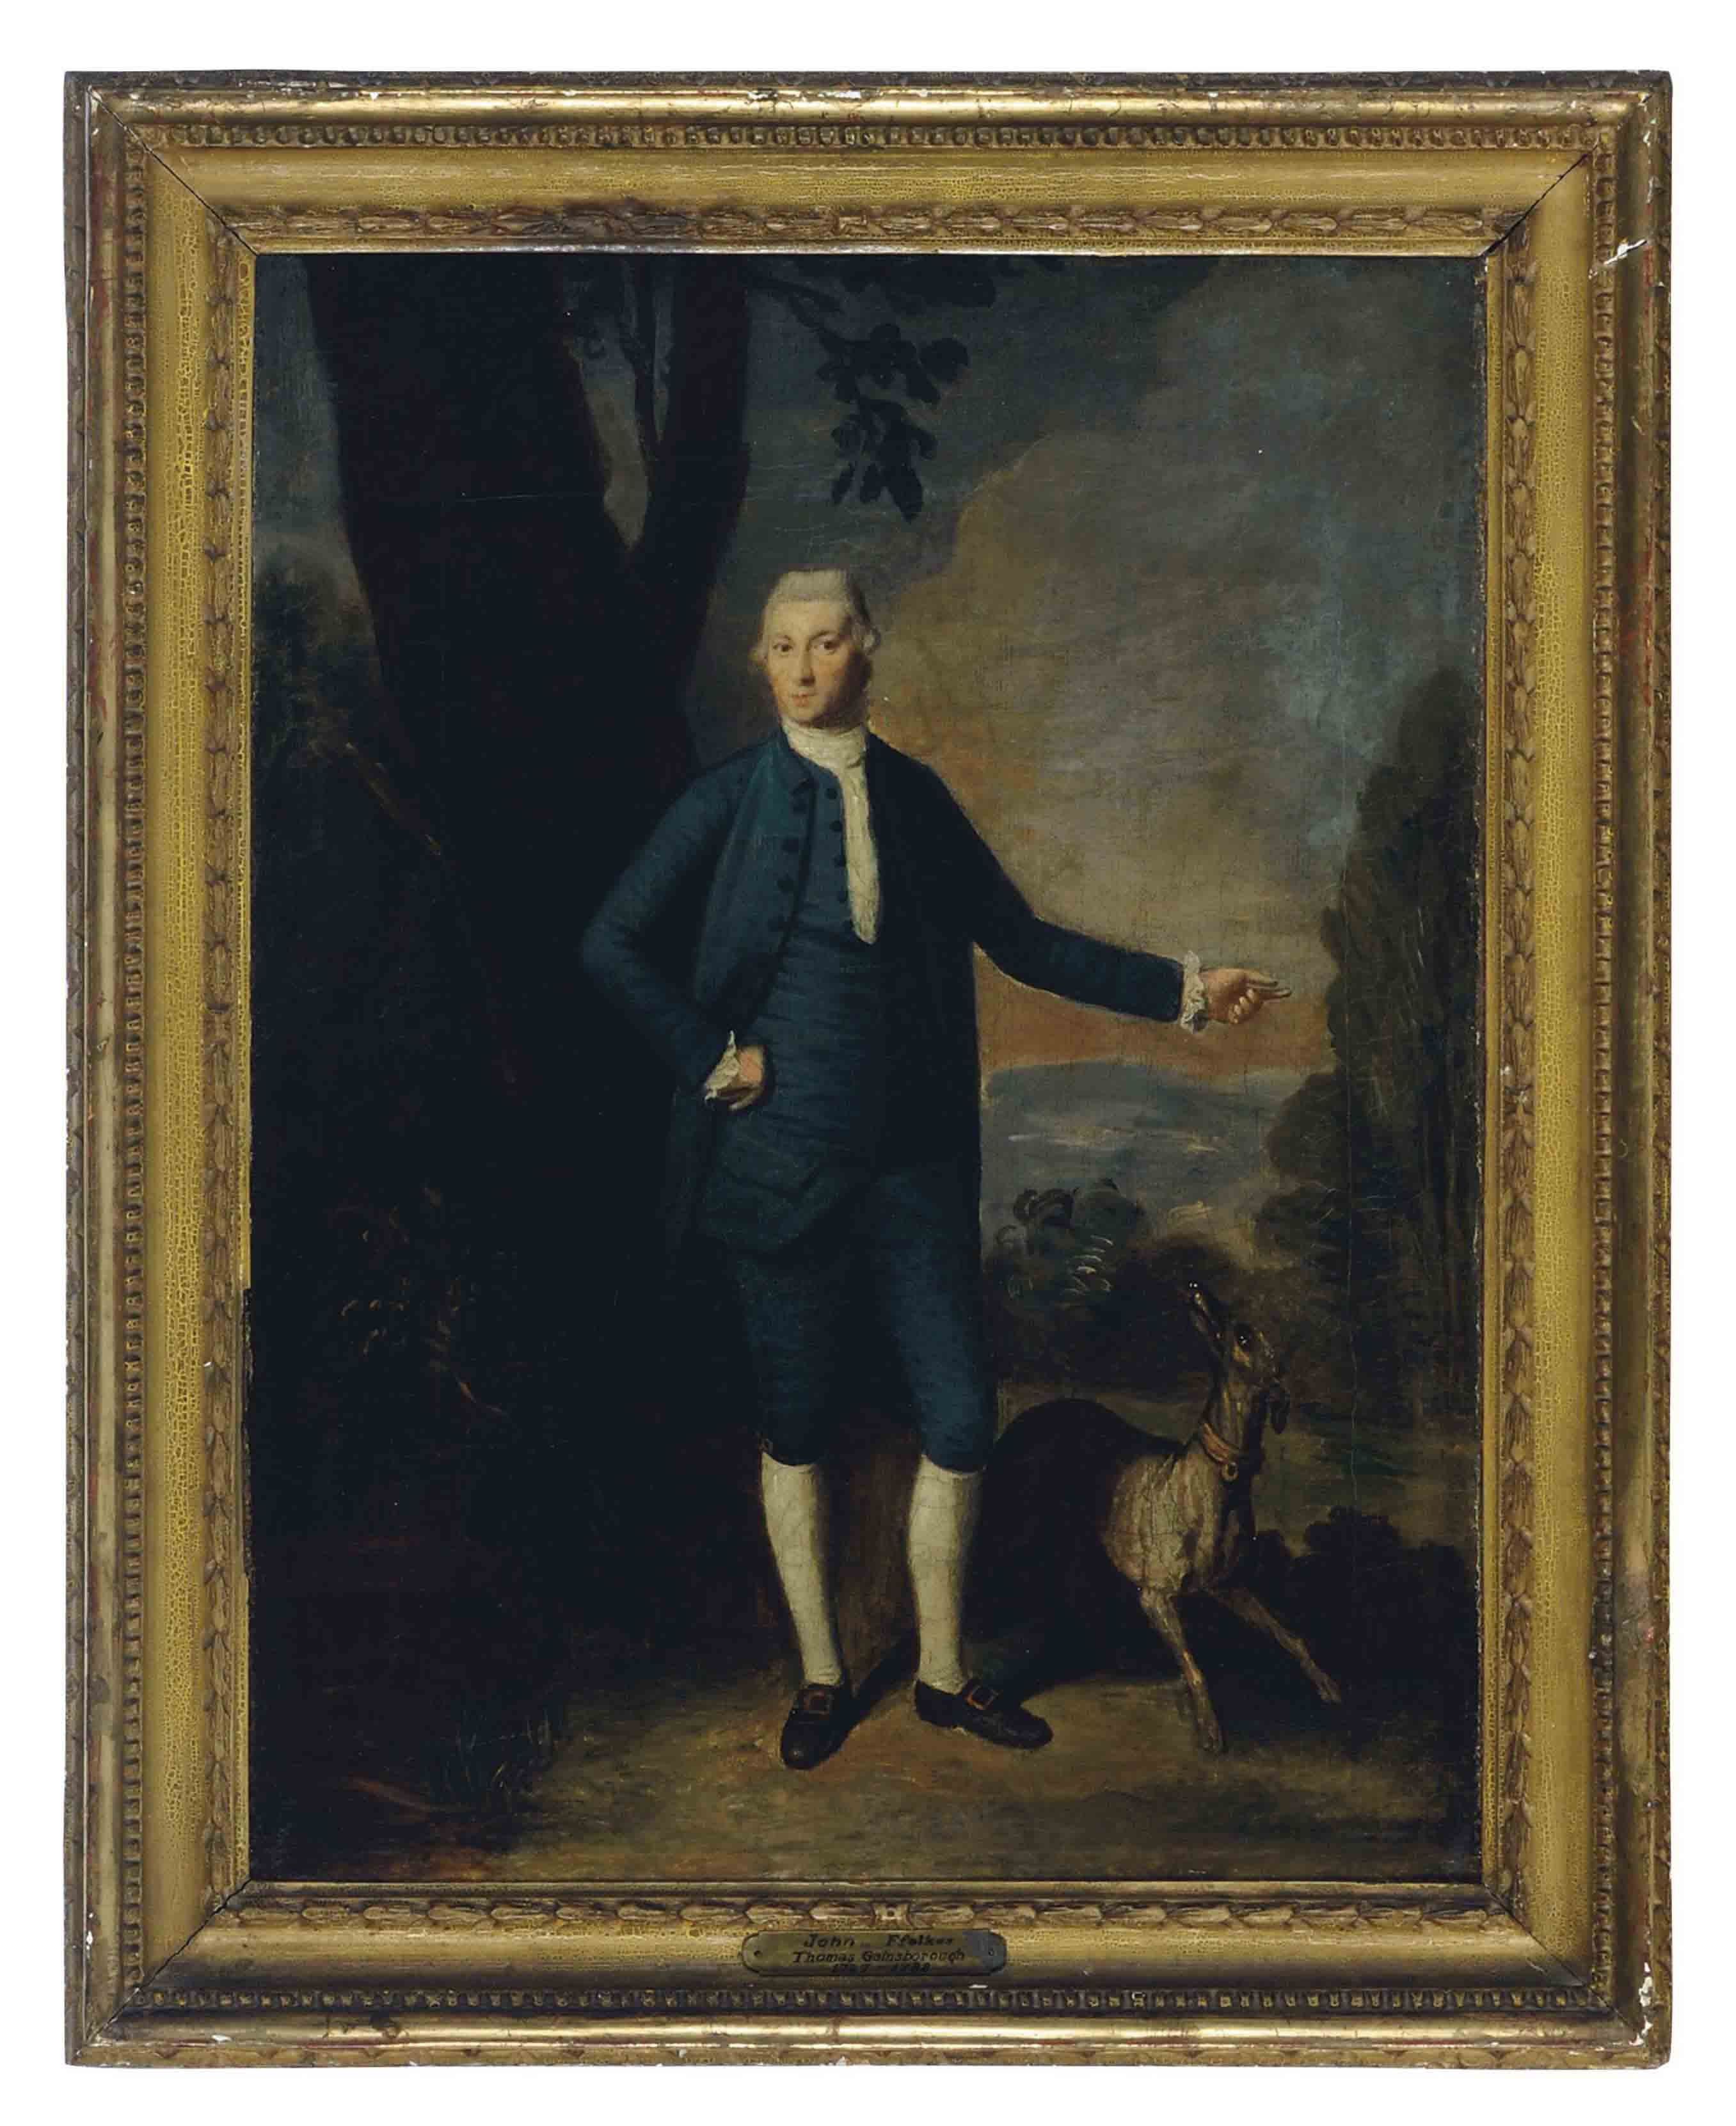 Portrait of John Ffolkes with a dog in a landscape; and a companion portrait of his wife Catherine Ffolkes